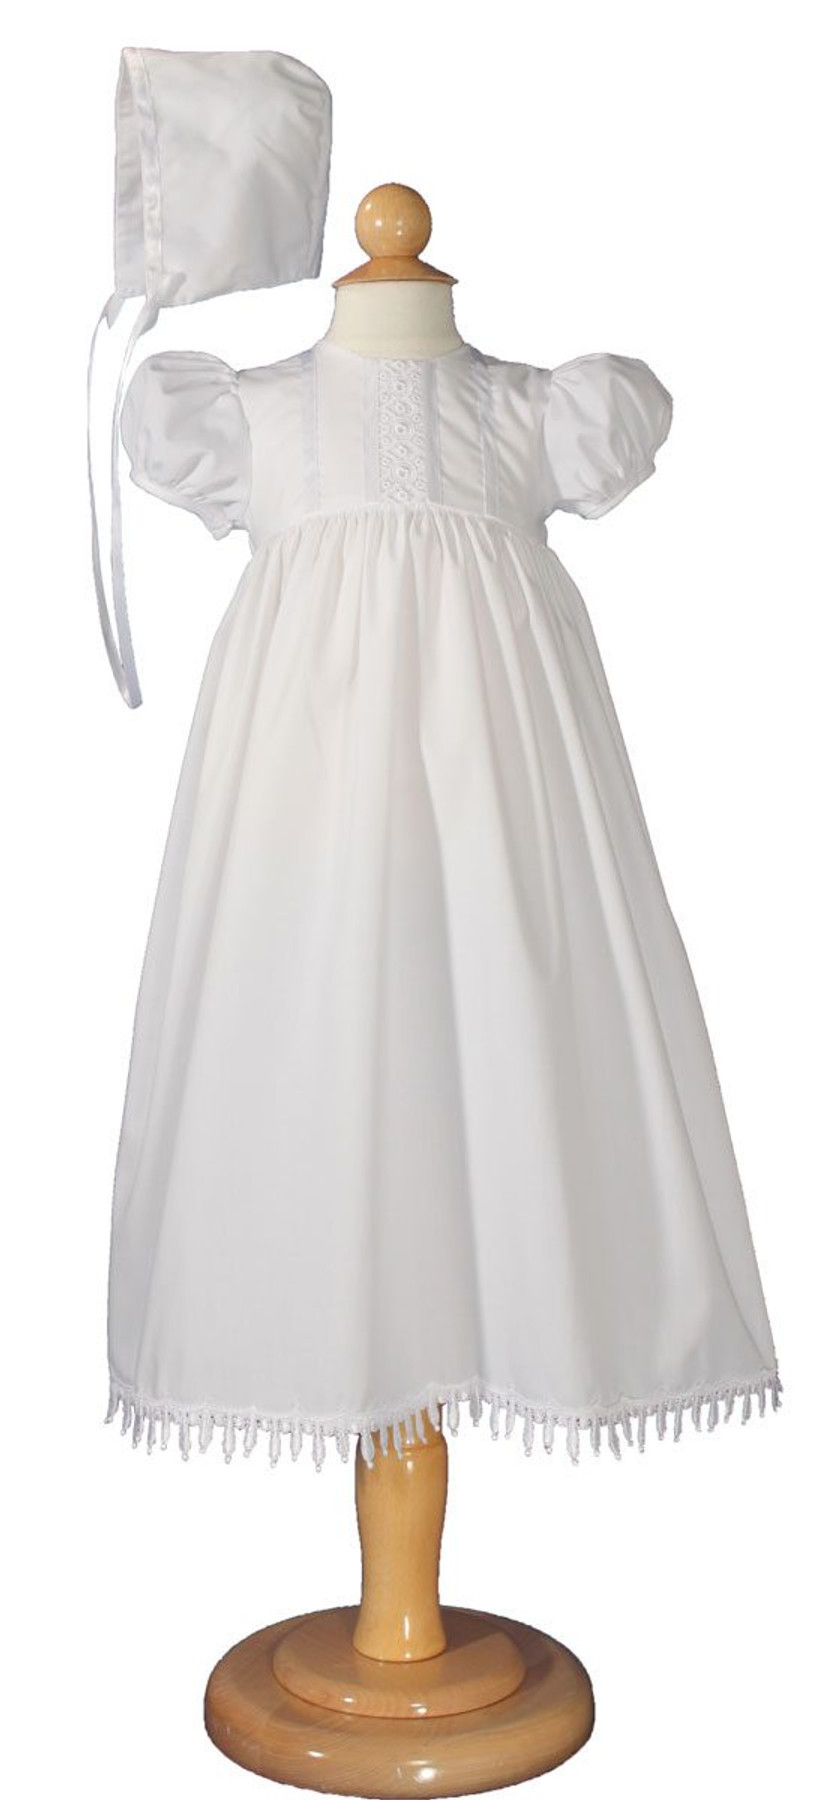 eardrop Lace Christening Baptism Gown with Bonnet, Girls 24″ Poly Cotton